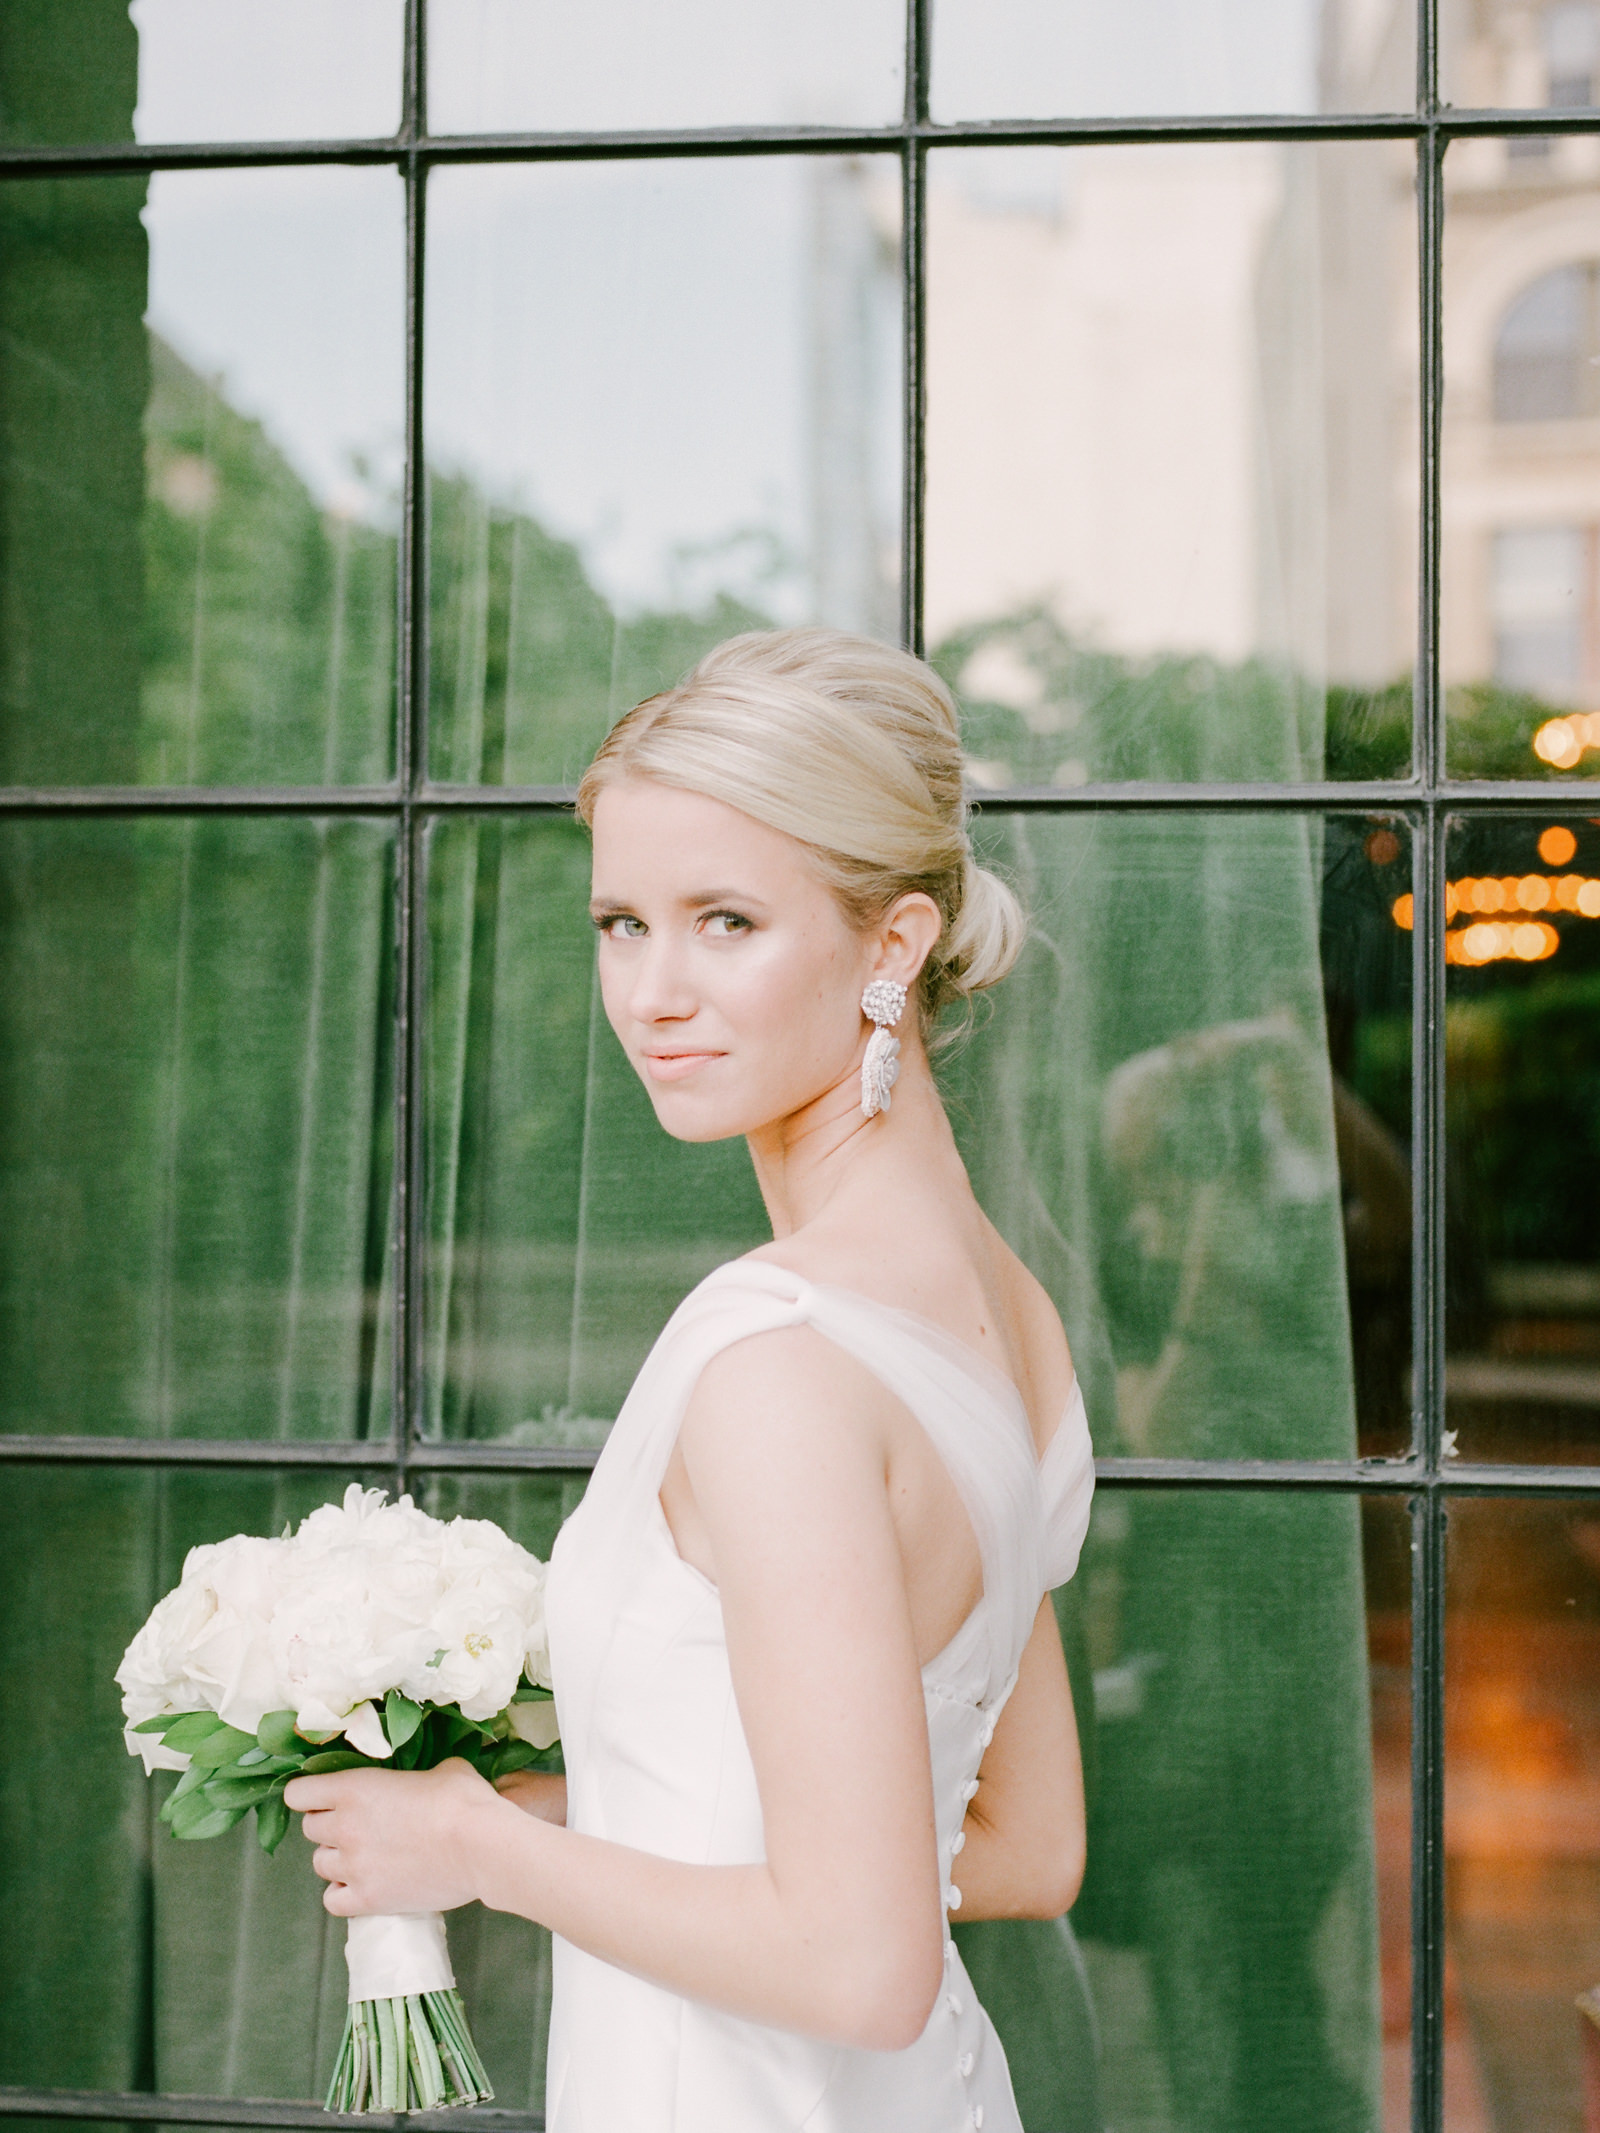 Intimate-NYC_wedding_ by Tanya Isaeva-77.jpg